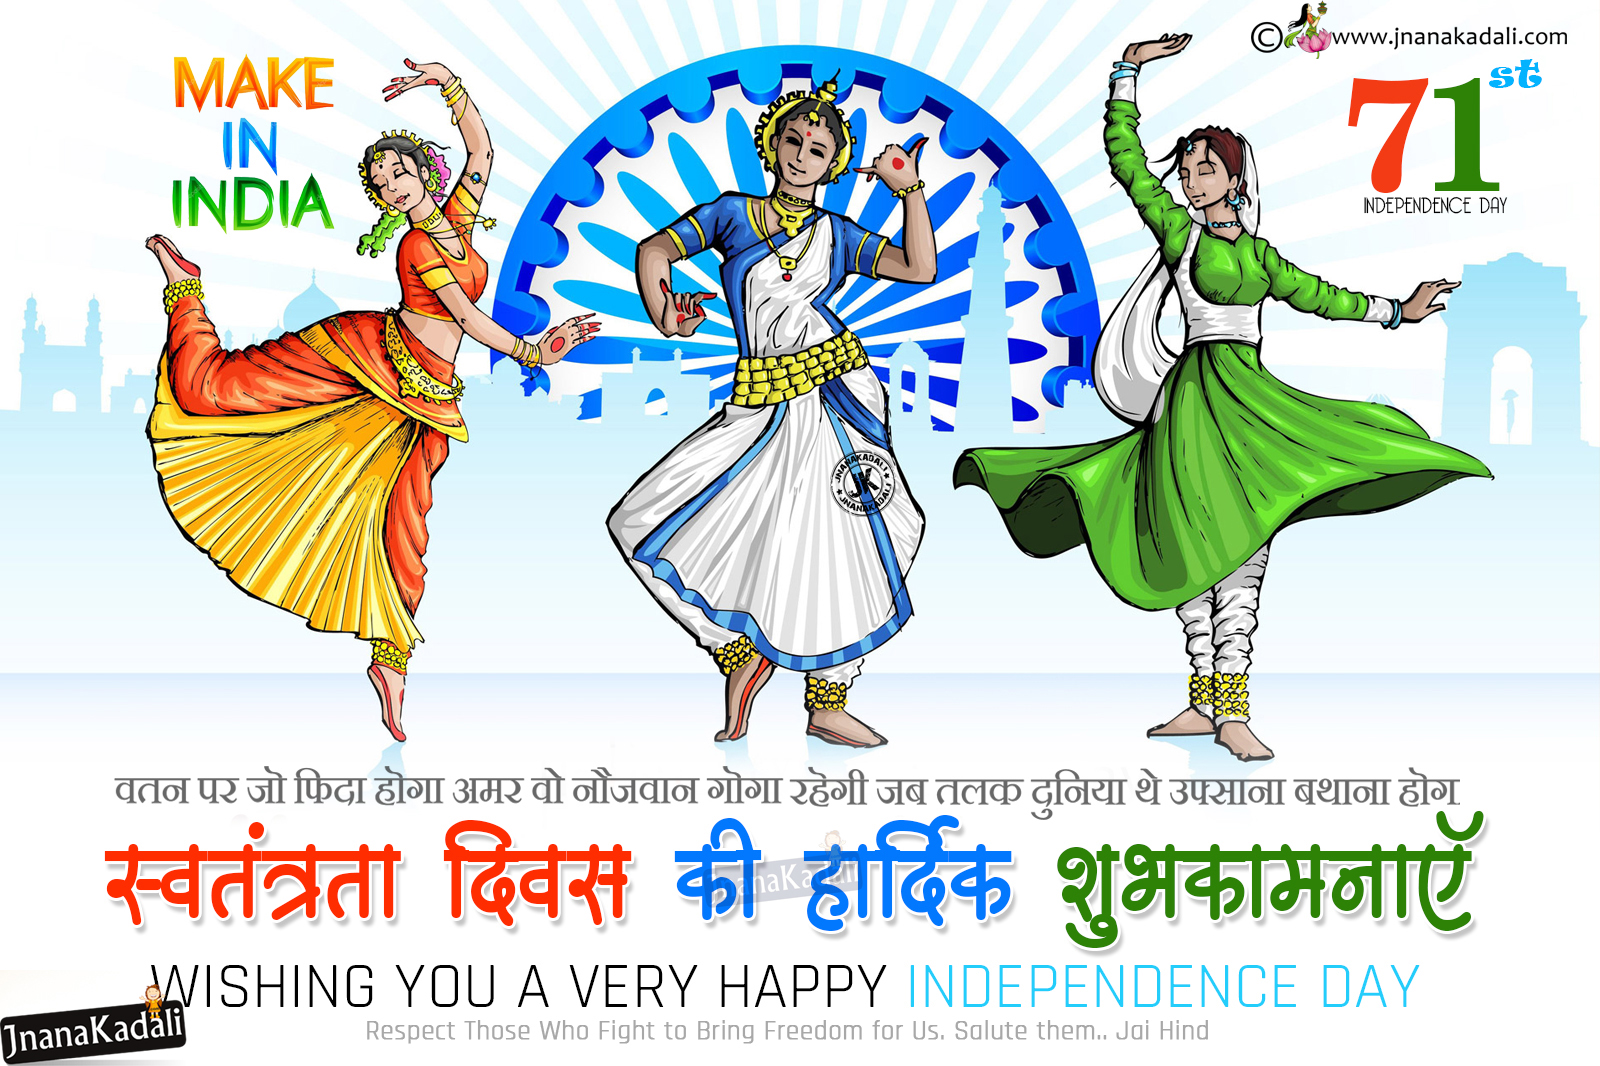 Independence Day Greetings In Hindi Industrifo